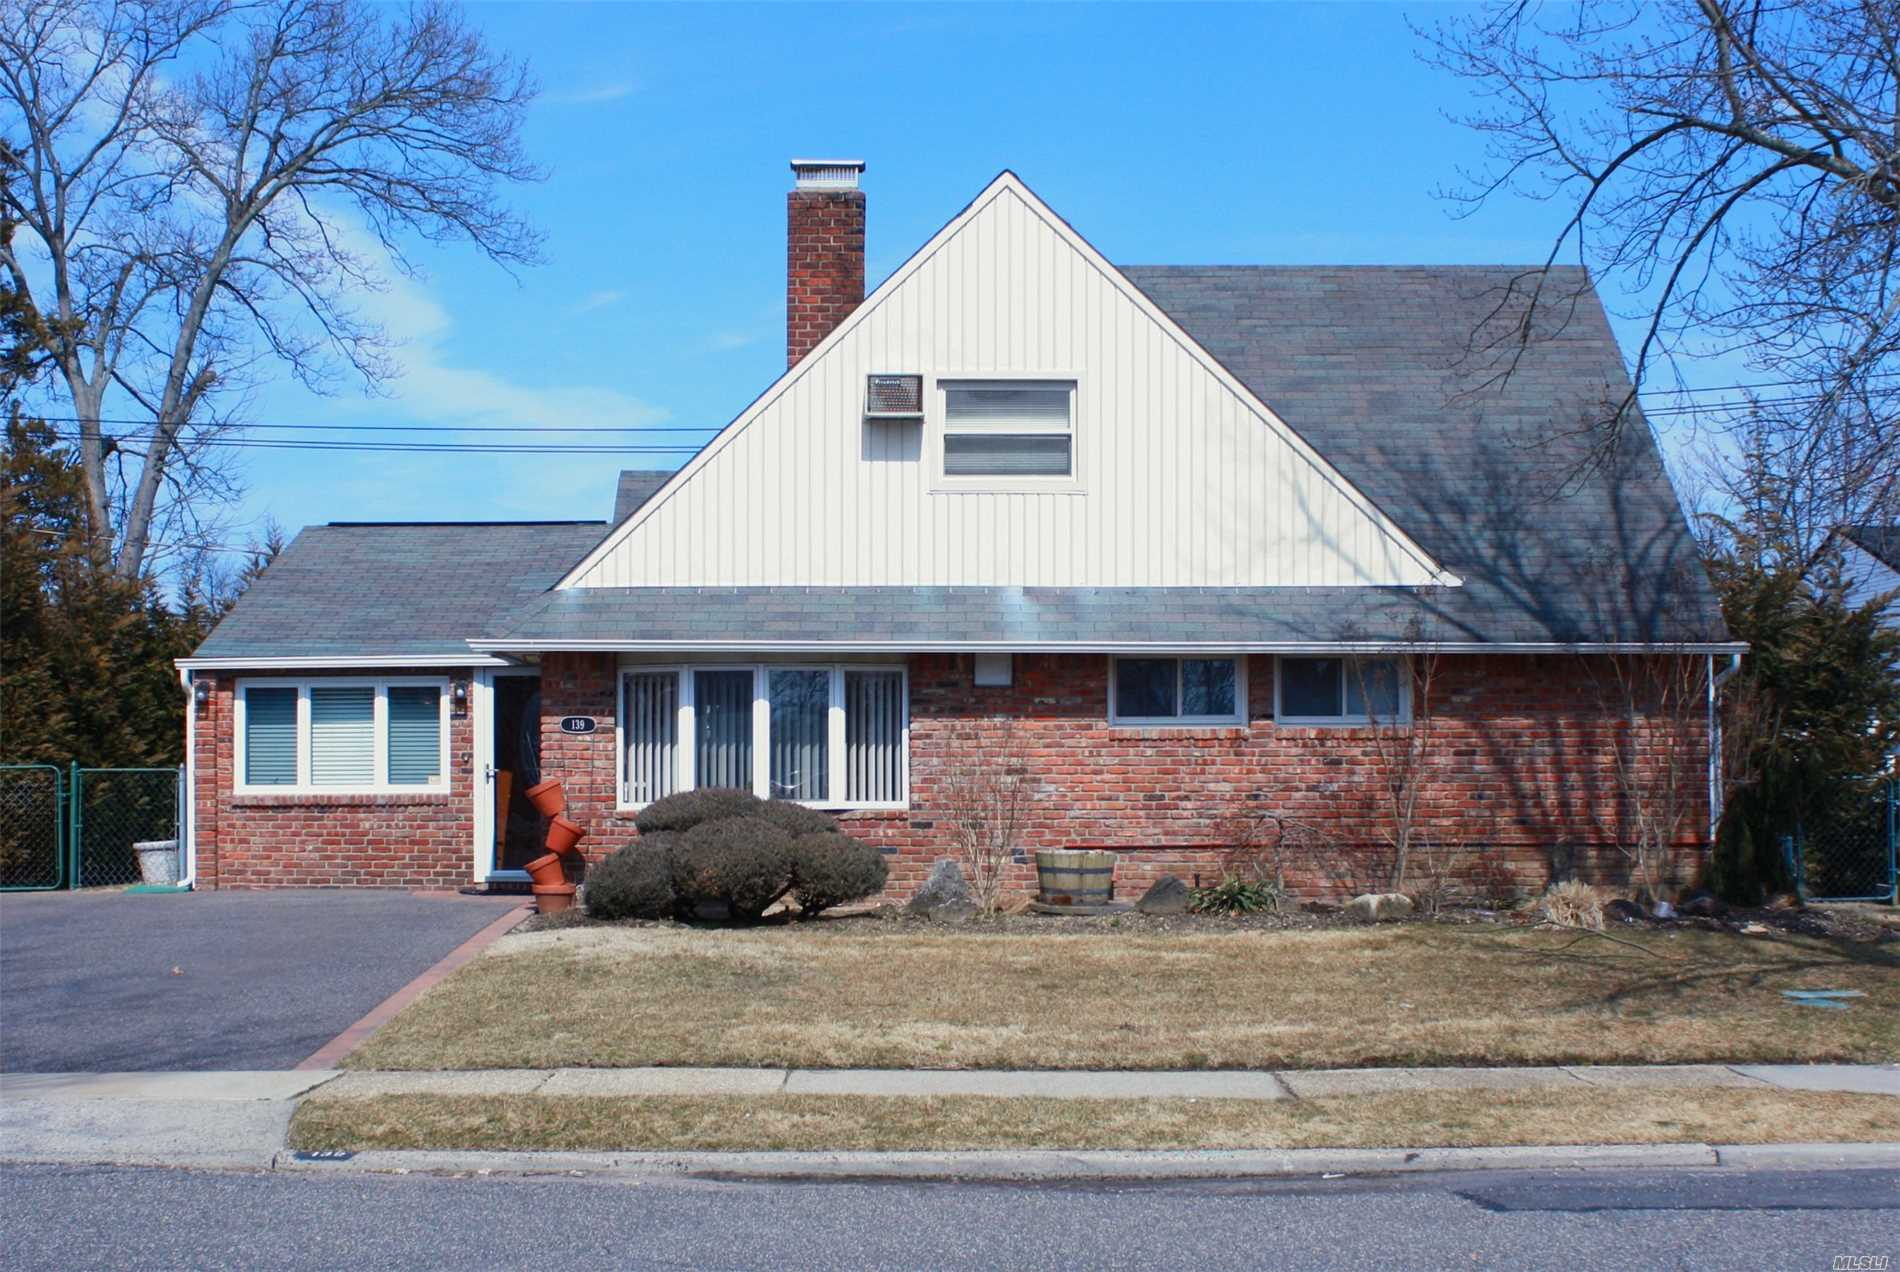 DISTINCTIVE MINT UPDATED EXPANDED CAPE, 3 OR 4/5 BR'S, *1ST FLOOR MBR, DINETTE, F/DR, F/LR, EIK, 2 AC'S, FP,  NEW BATH. FULL 1ST FLOOR REAR EXTENSION APPROX 15X32, 2 SKYLIGHTS CATHEDRAL CEILING, ALL ROOMS FORMAL SIZE, WOOD FLOORS, NEW GAS BOILER, NEW A/C'S, ANDERSON WINDOWS, STORAGE ROOM 2 REAR ENTRANCES,  ATTIC STAIR. ** FULL 2ND FLOOR MASTER BR SUITE, 2 SKYLIGHTS, 2 A/C'S NEW BATH, OFFICE, XL CLOSET SPACE.